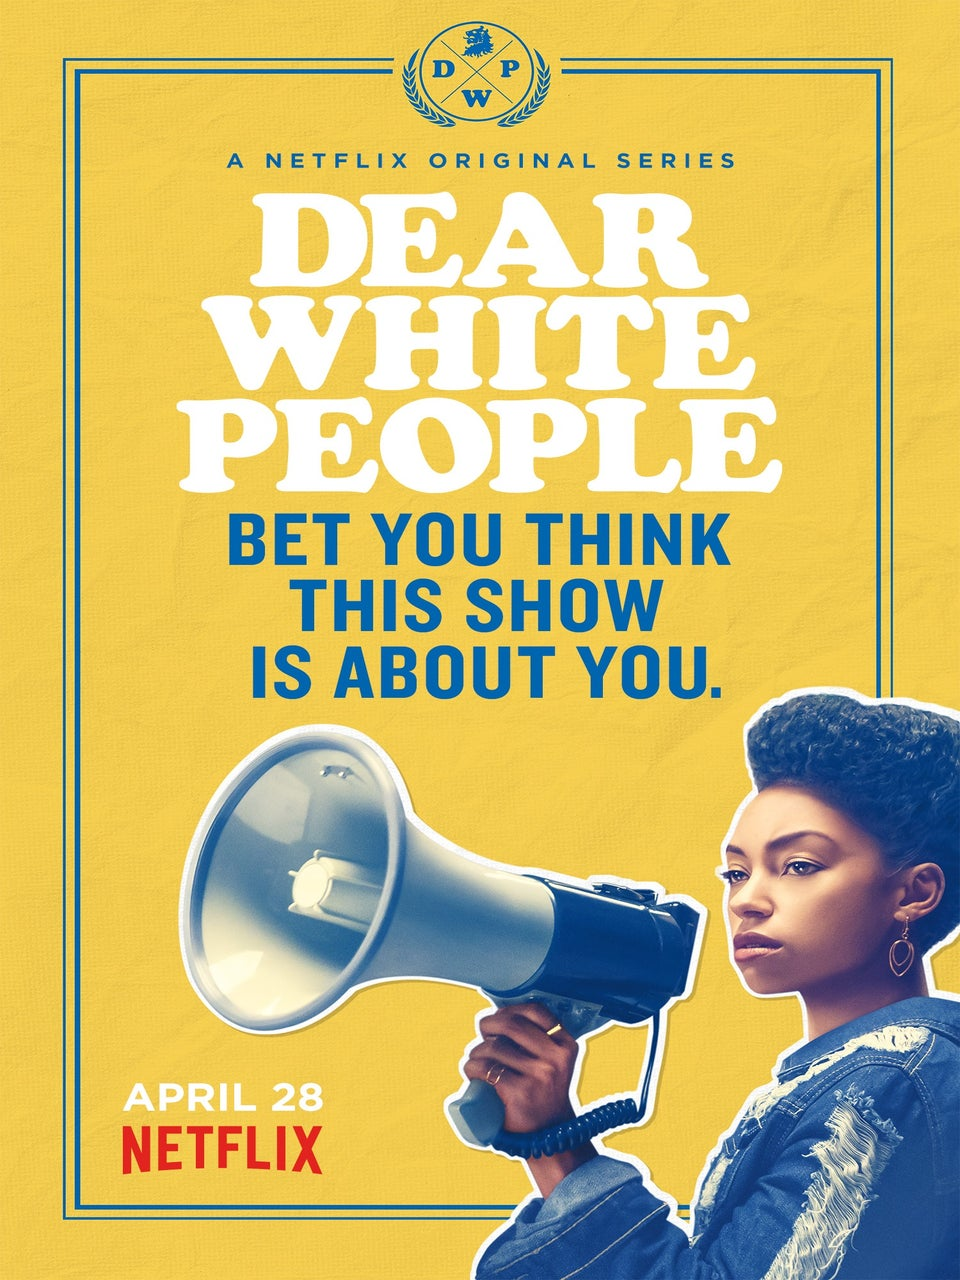 WATCH: The Trailer For 'Dear White People' Is Proof That Netflix Might Have Another Hit On Their Hands